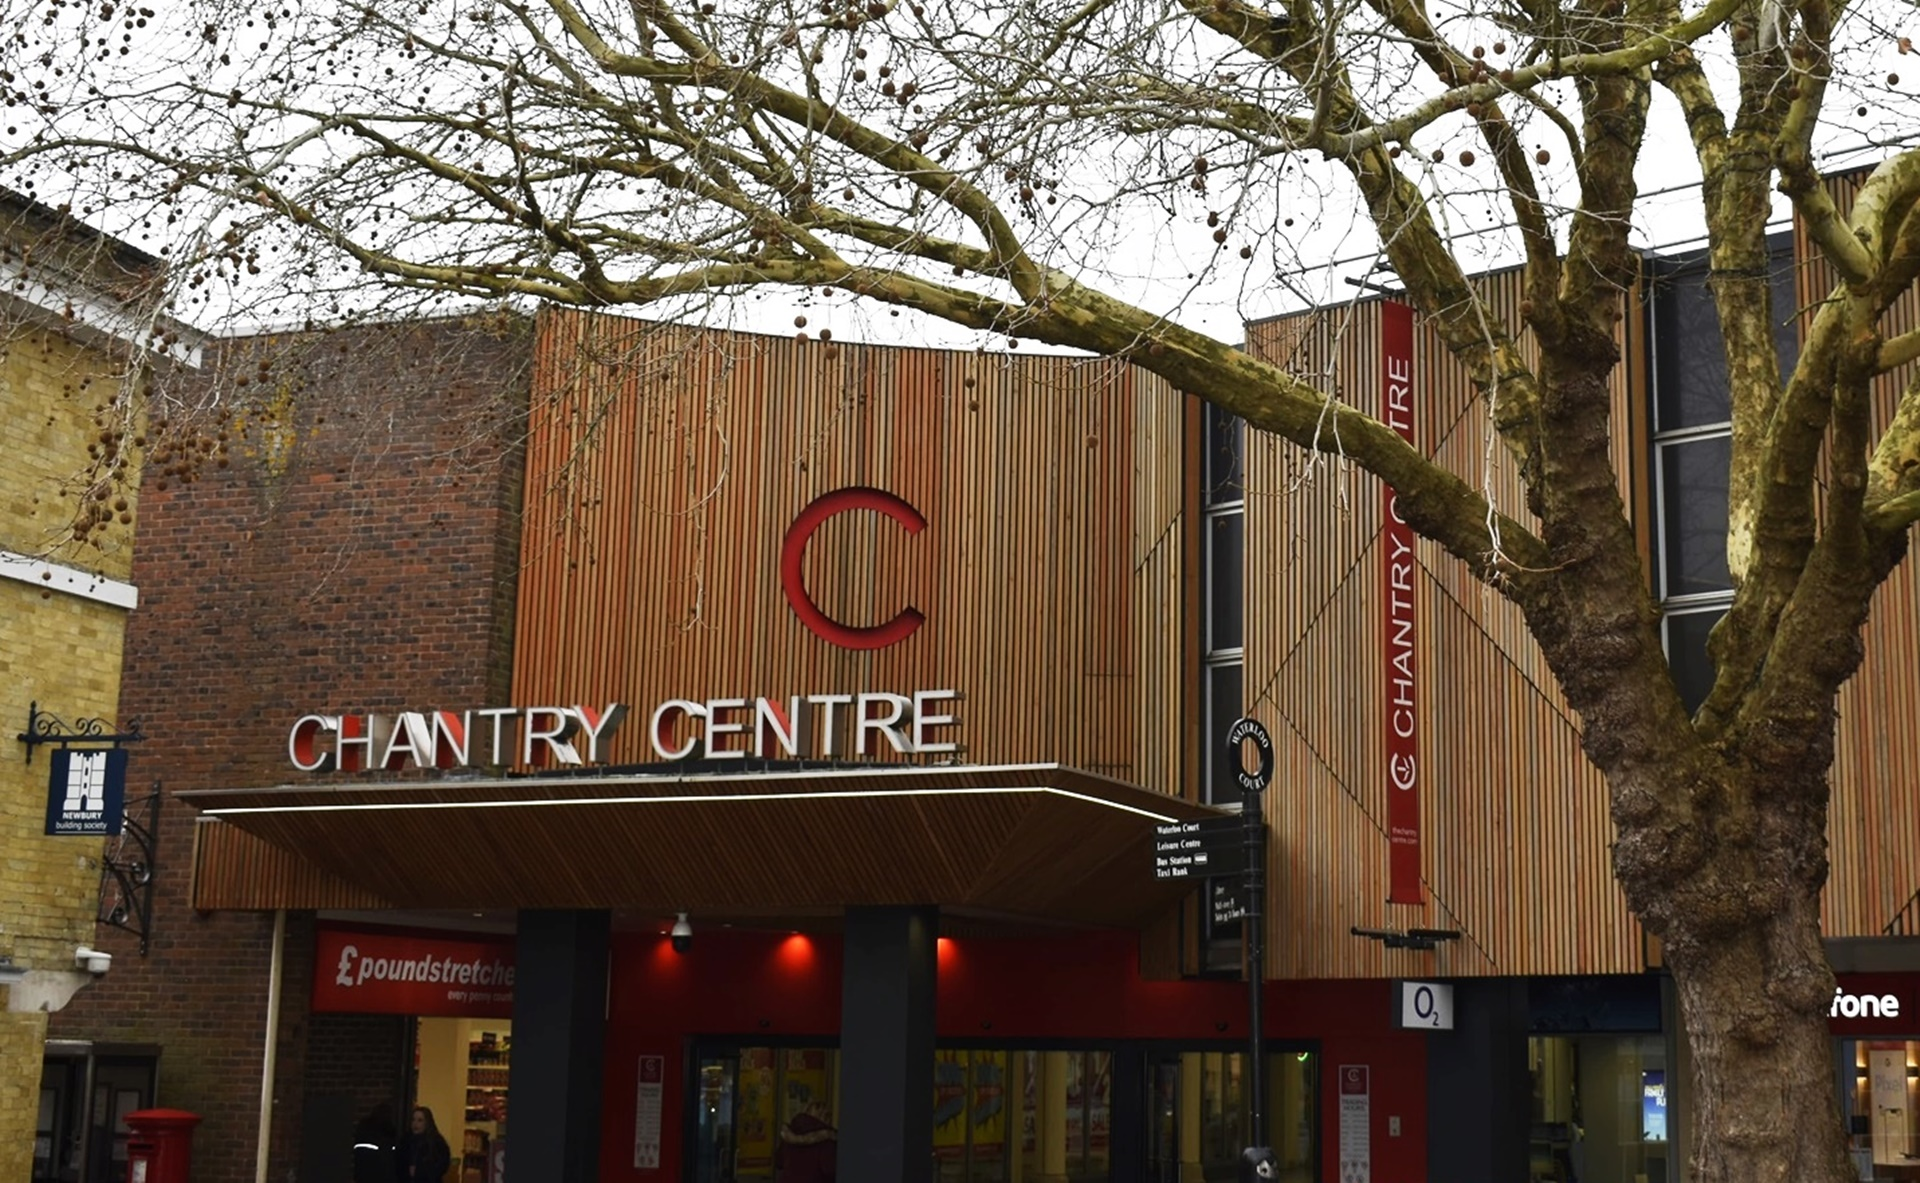 The Chantry Centre. Andover